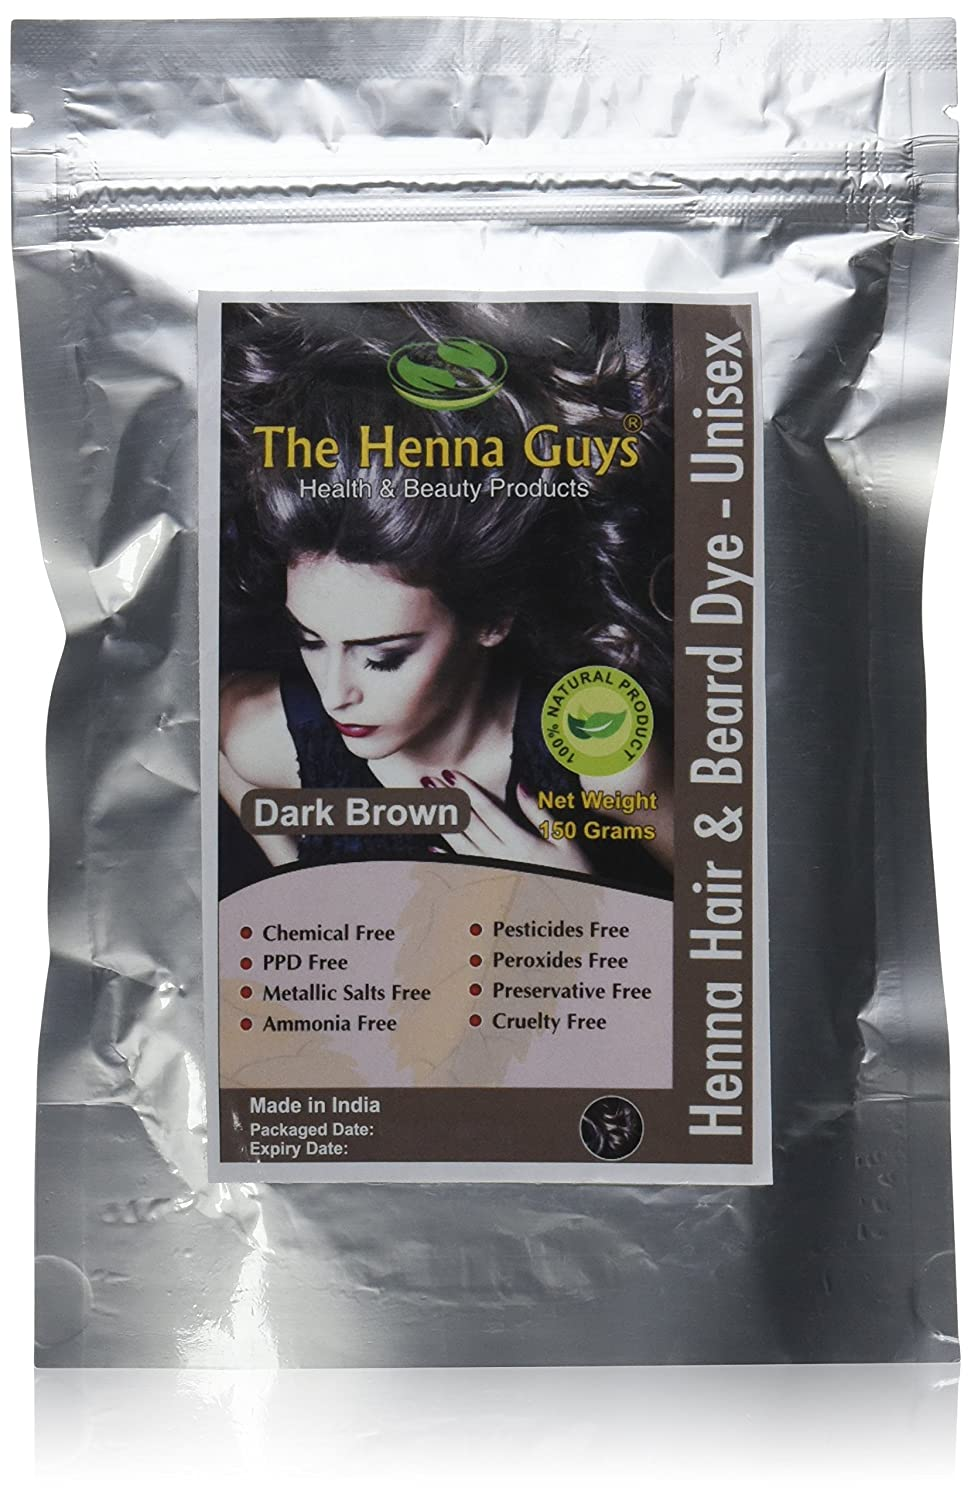 571b02b8d Amazon.com : 1 Pack of Dark Brown Henna Hair Color/Dye - 150 Grams -  Chemicals Free Hair Color - The Henna Guys : Beauty